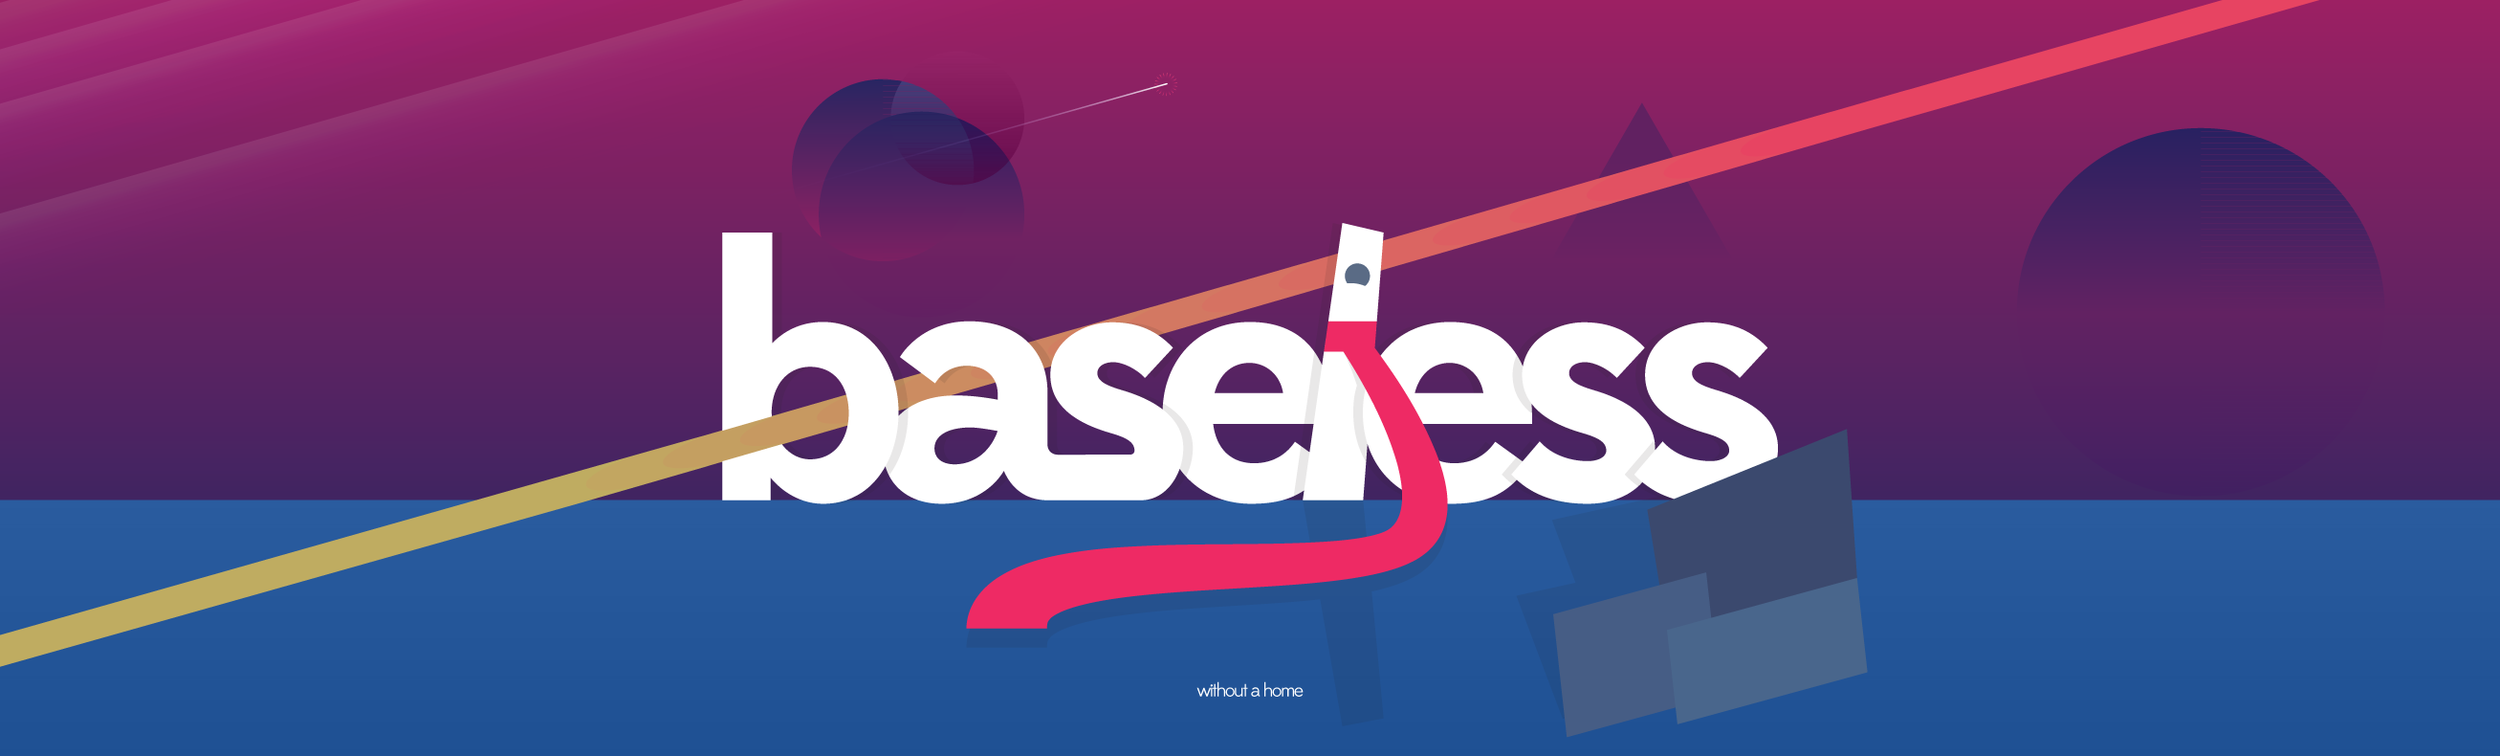 baseless-twittercover-2-10.png